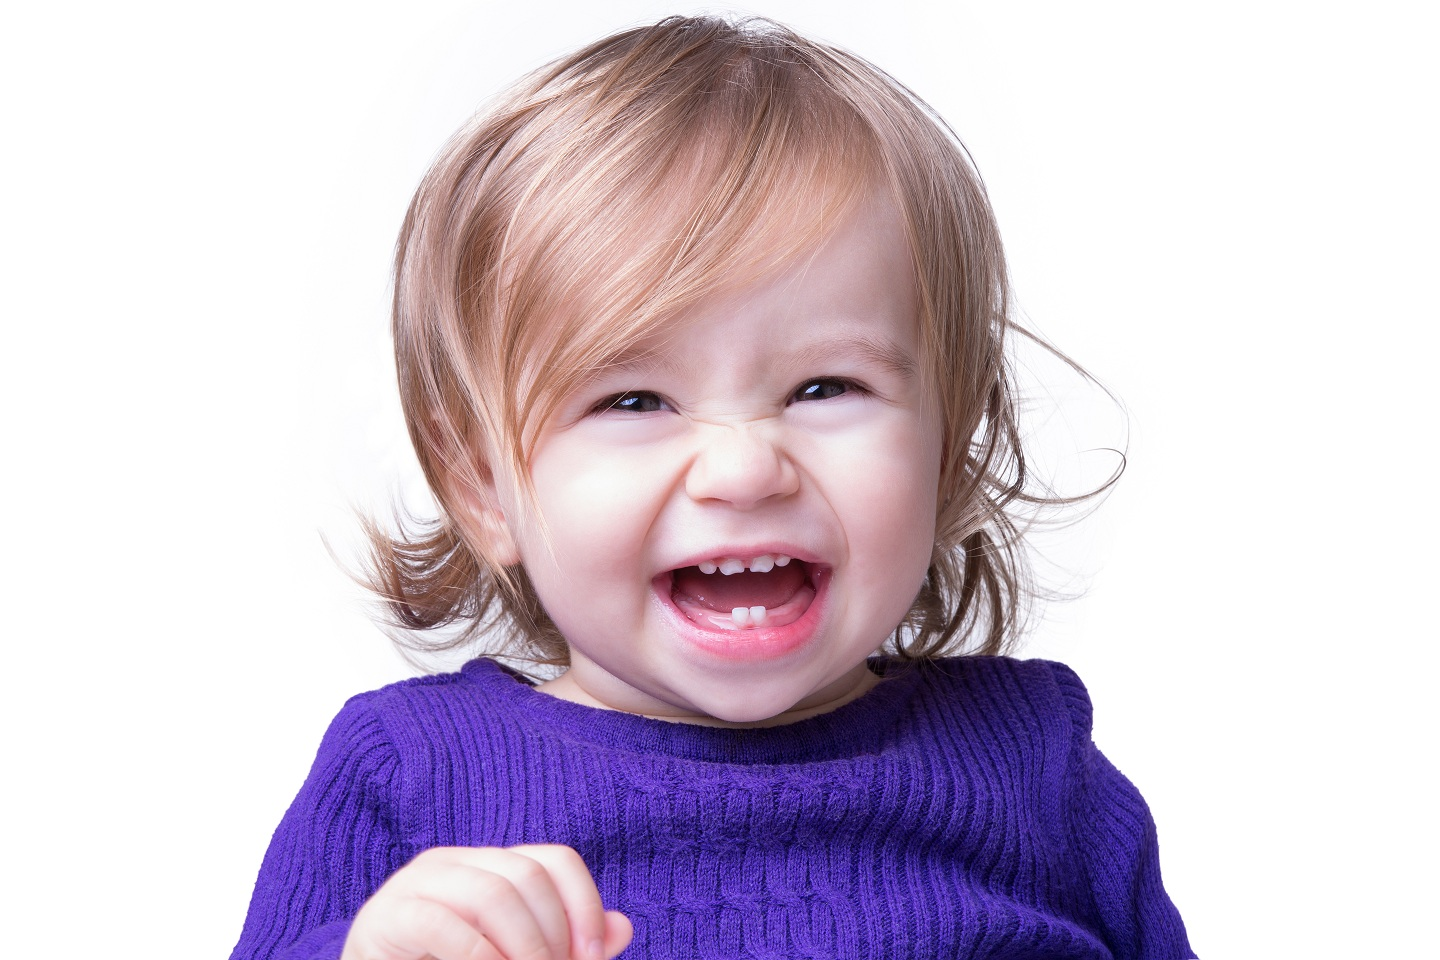 Dairy ingredient potential remains untapped in the toddler nutrition category